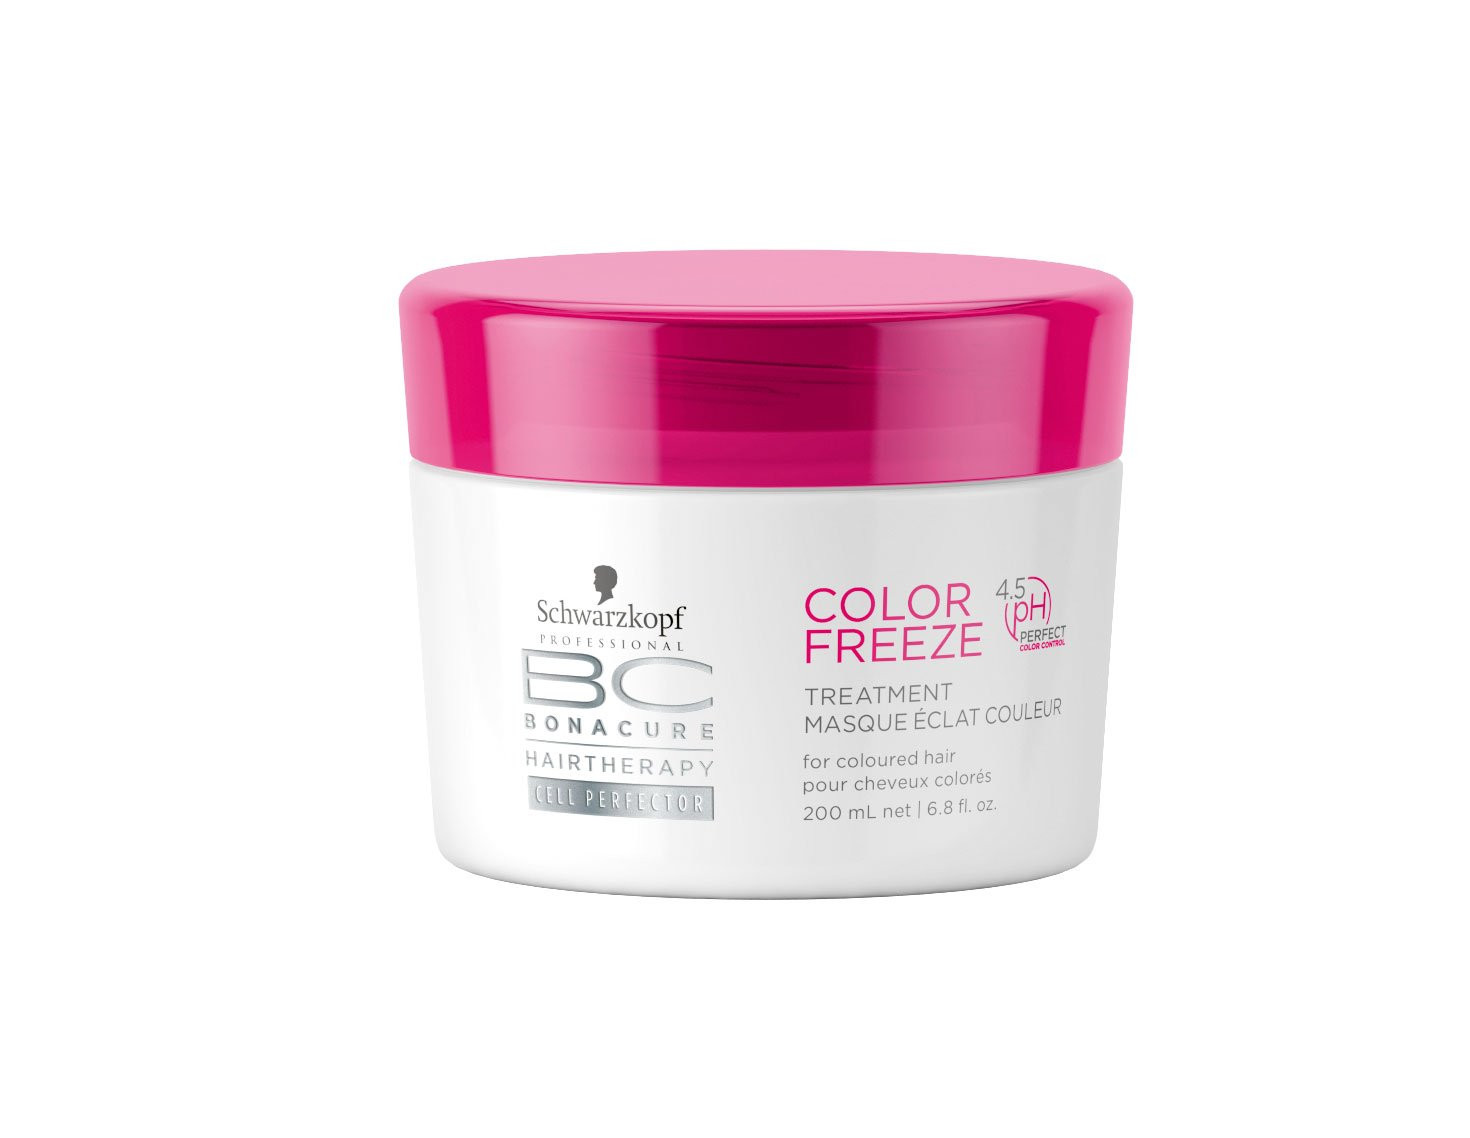 Schwarzkopf Professional Color Freeze Treatment, 200ml